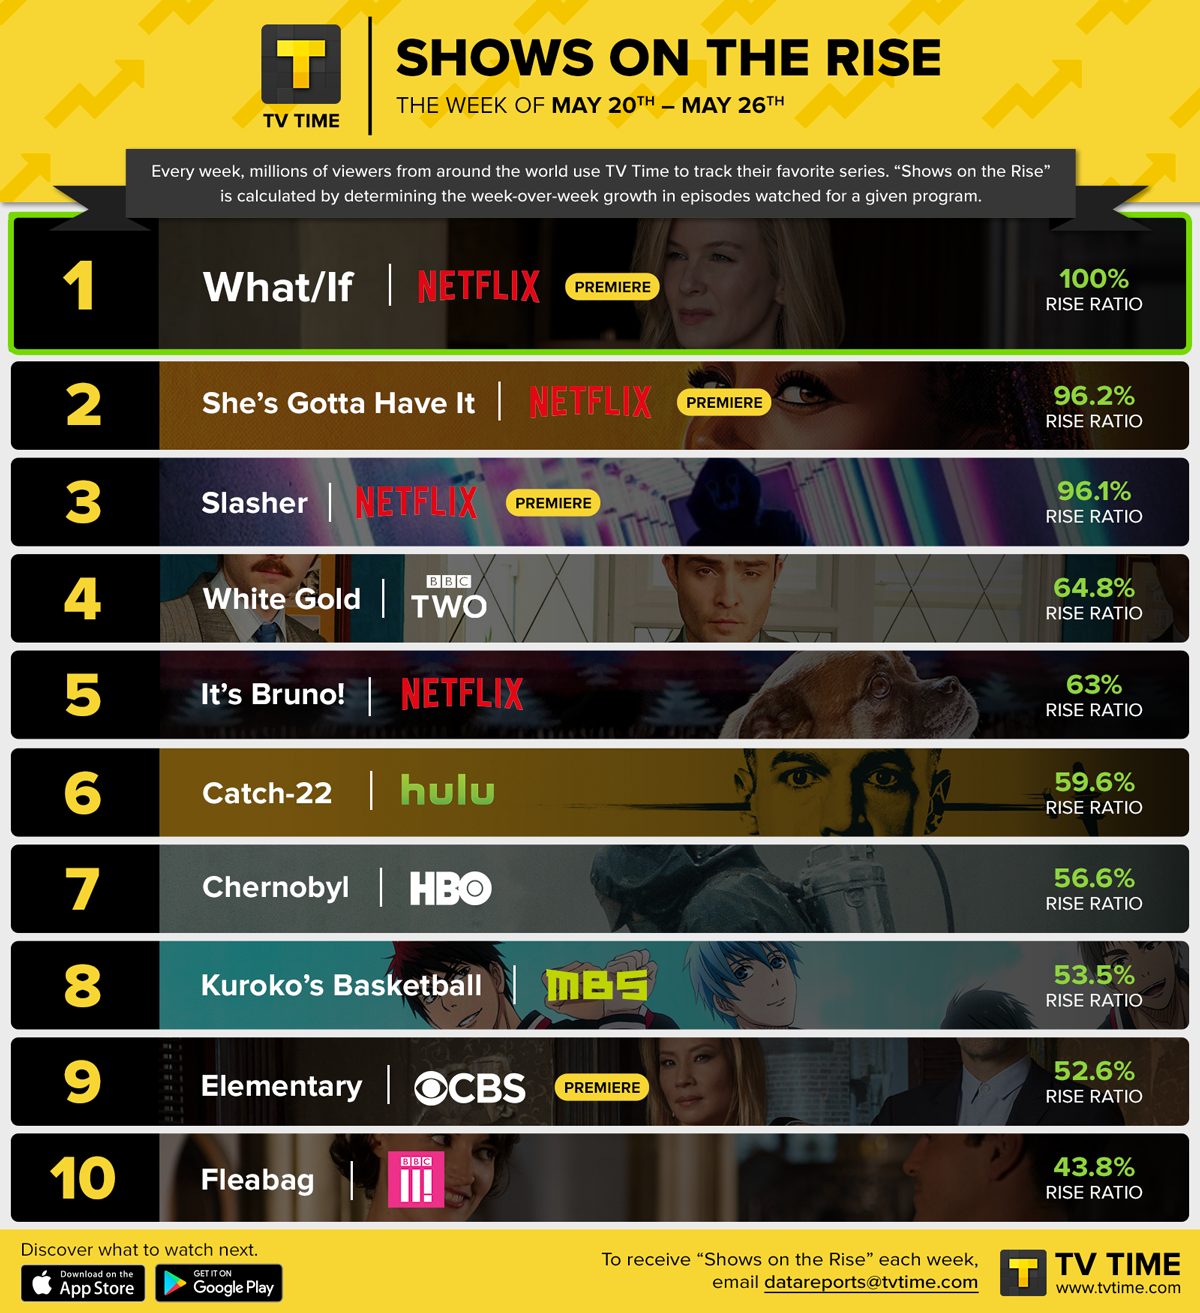 SHOWS ON THE RISE: Netflix Originals Medal In The Top Three